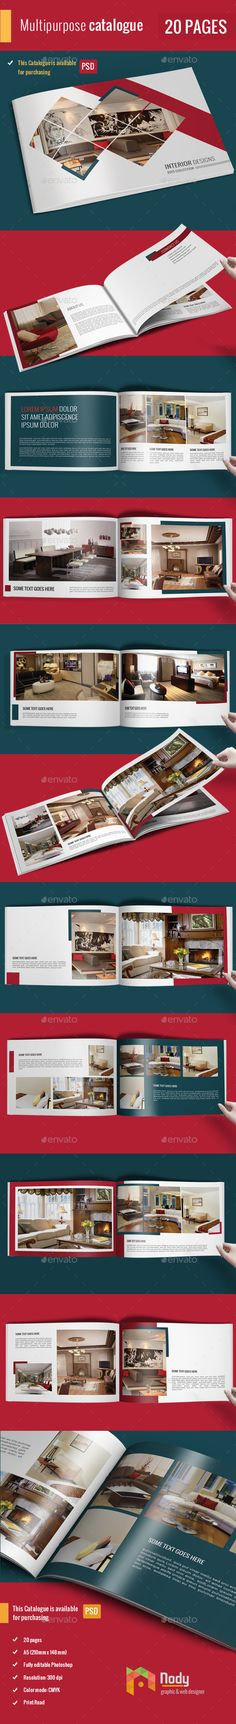 Simple Catalog / Portfolio / Brochure - Catalogs Brochures Professional Catalogue/Brochure The file include 20 pages including cover pages A5 (210mm x 148 mm) Fully editable Photoshop Resolution: 300 dpi Color mode: CMYK Print Ready